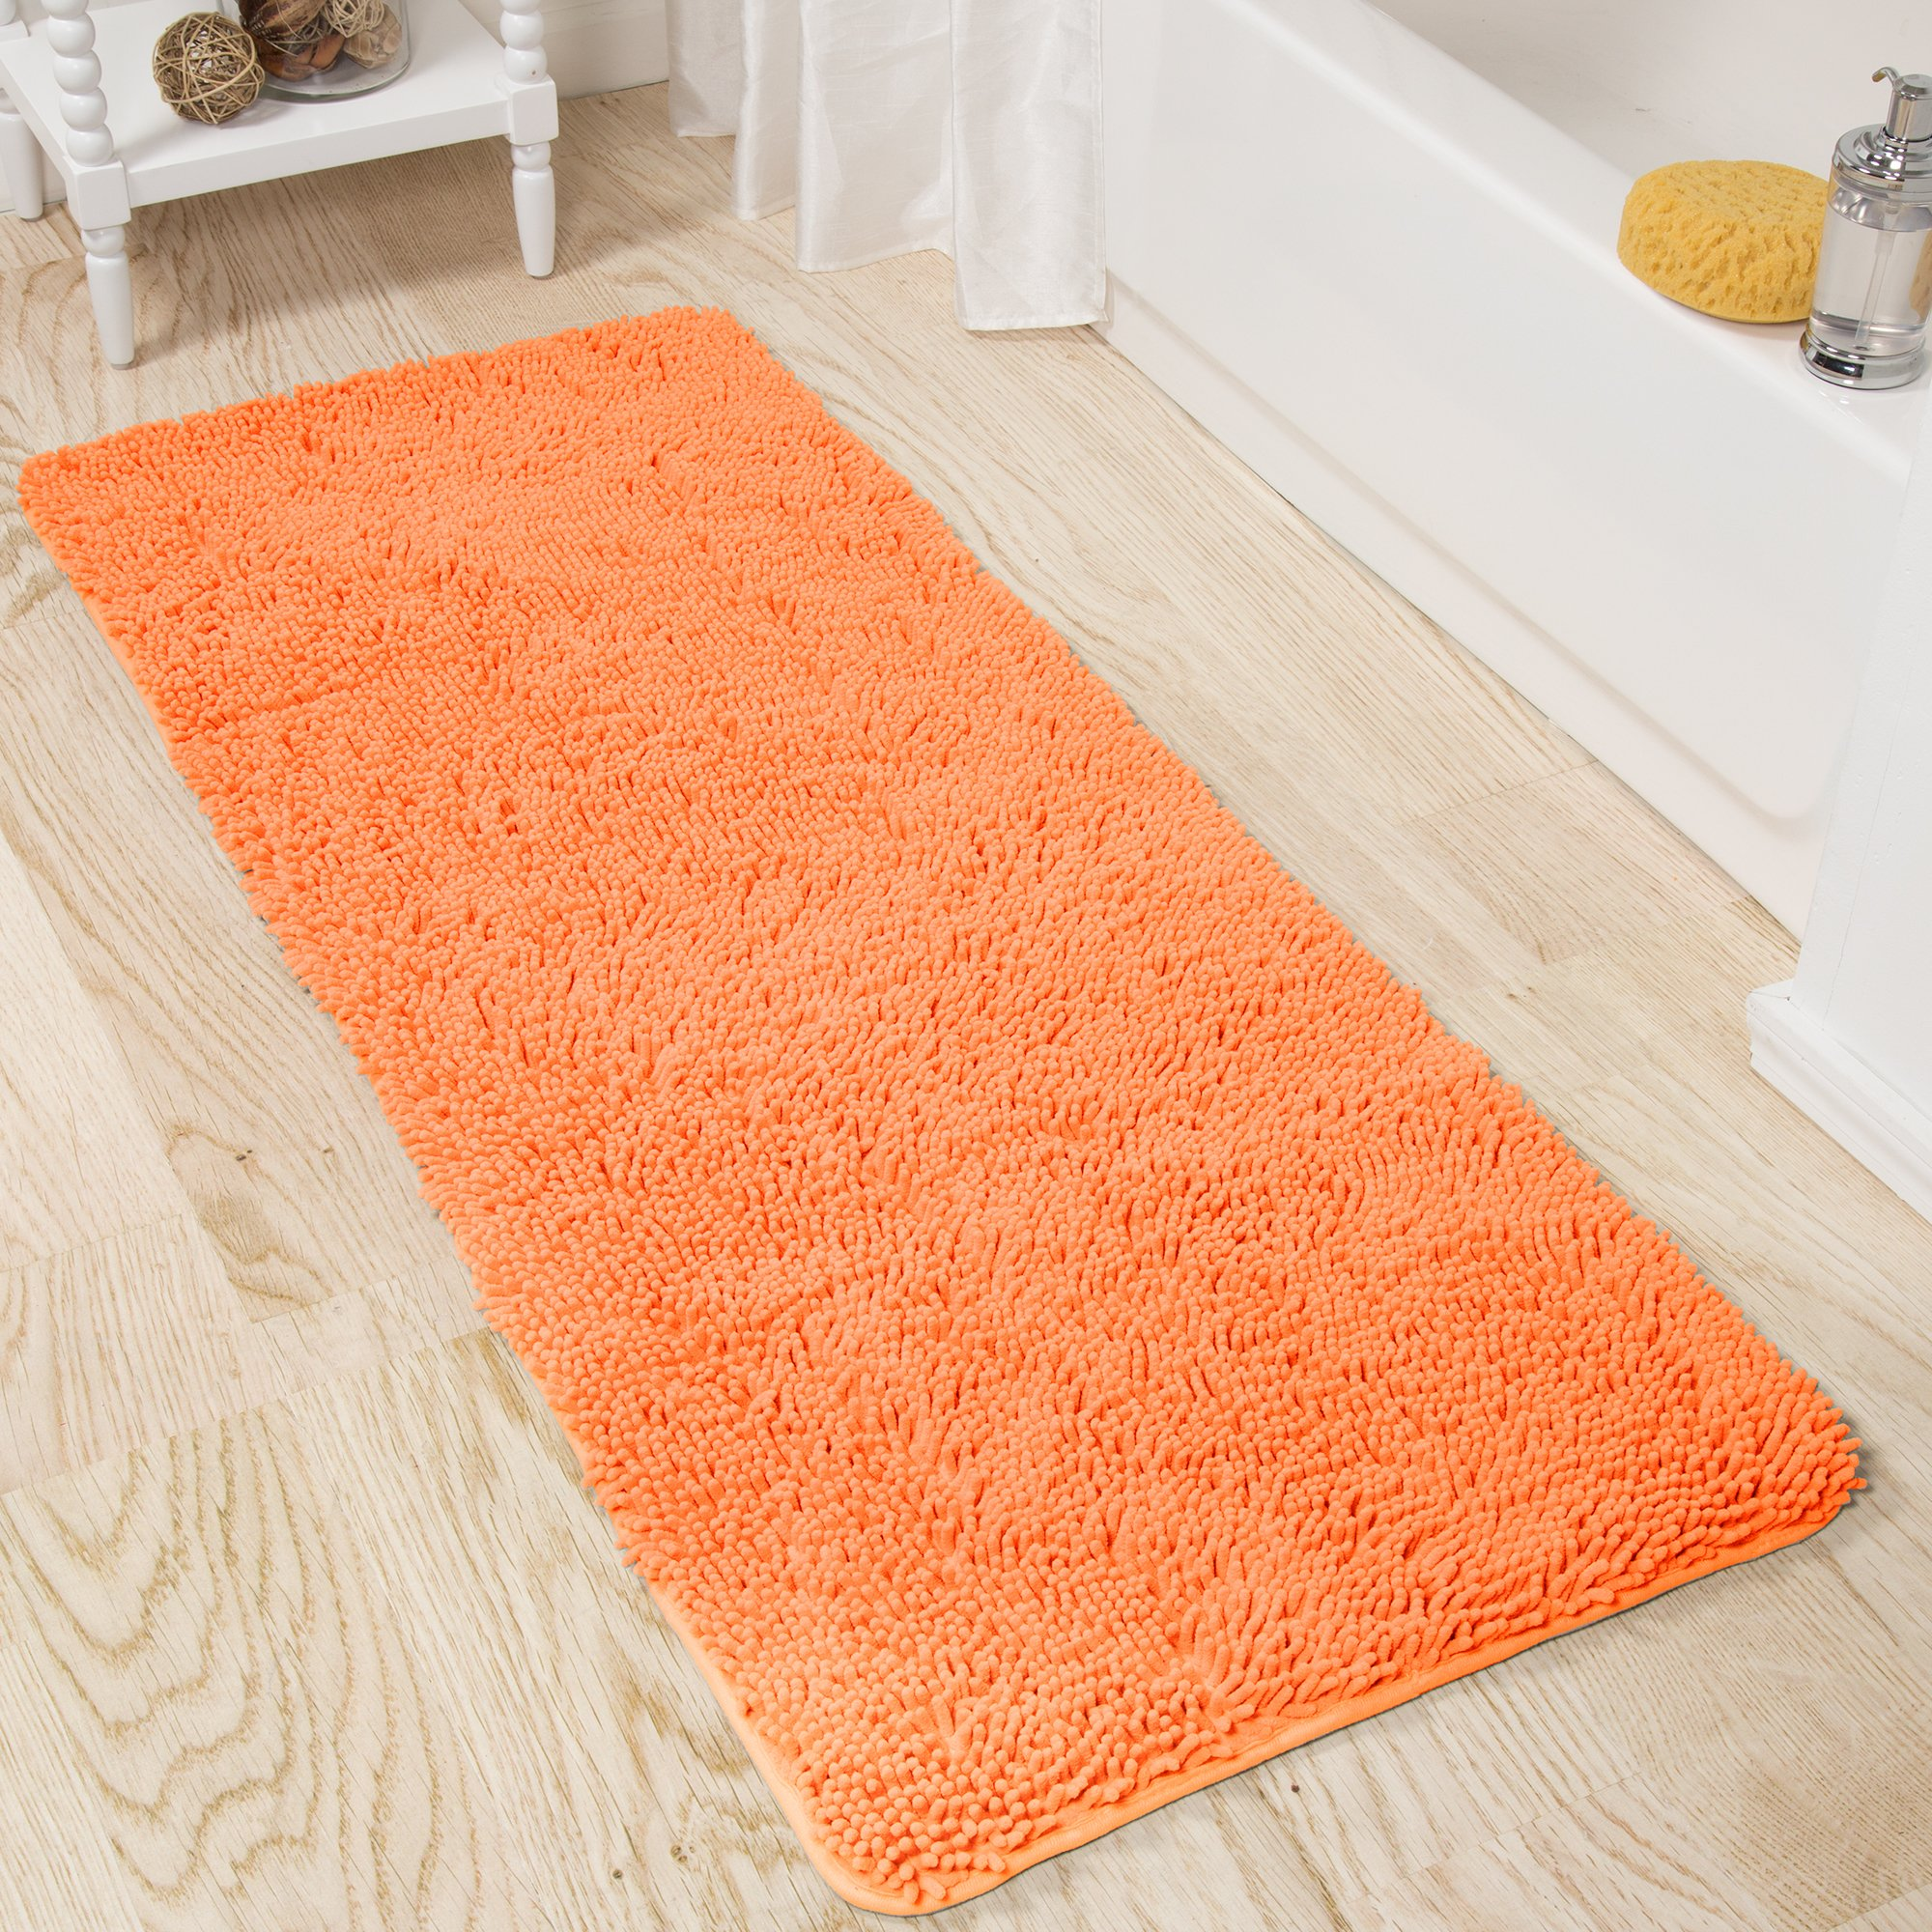 Lavish Home 67-19-PE Shag Bath Mat